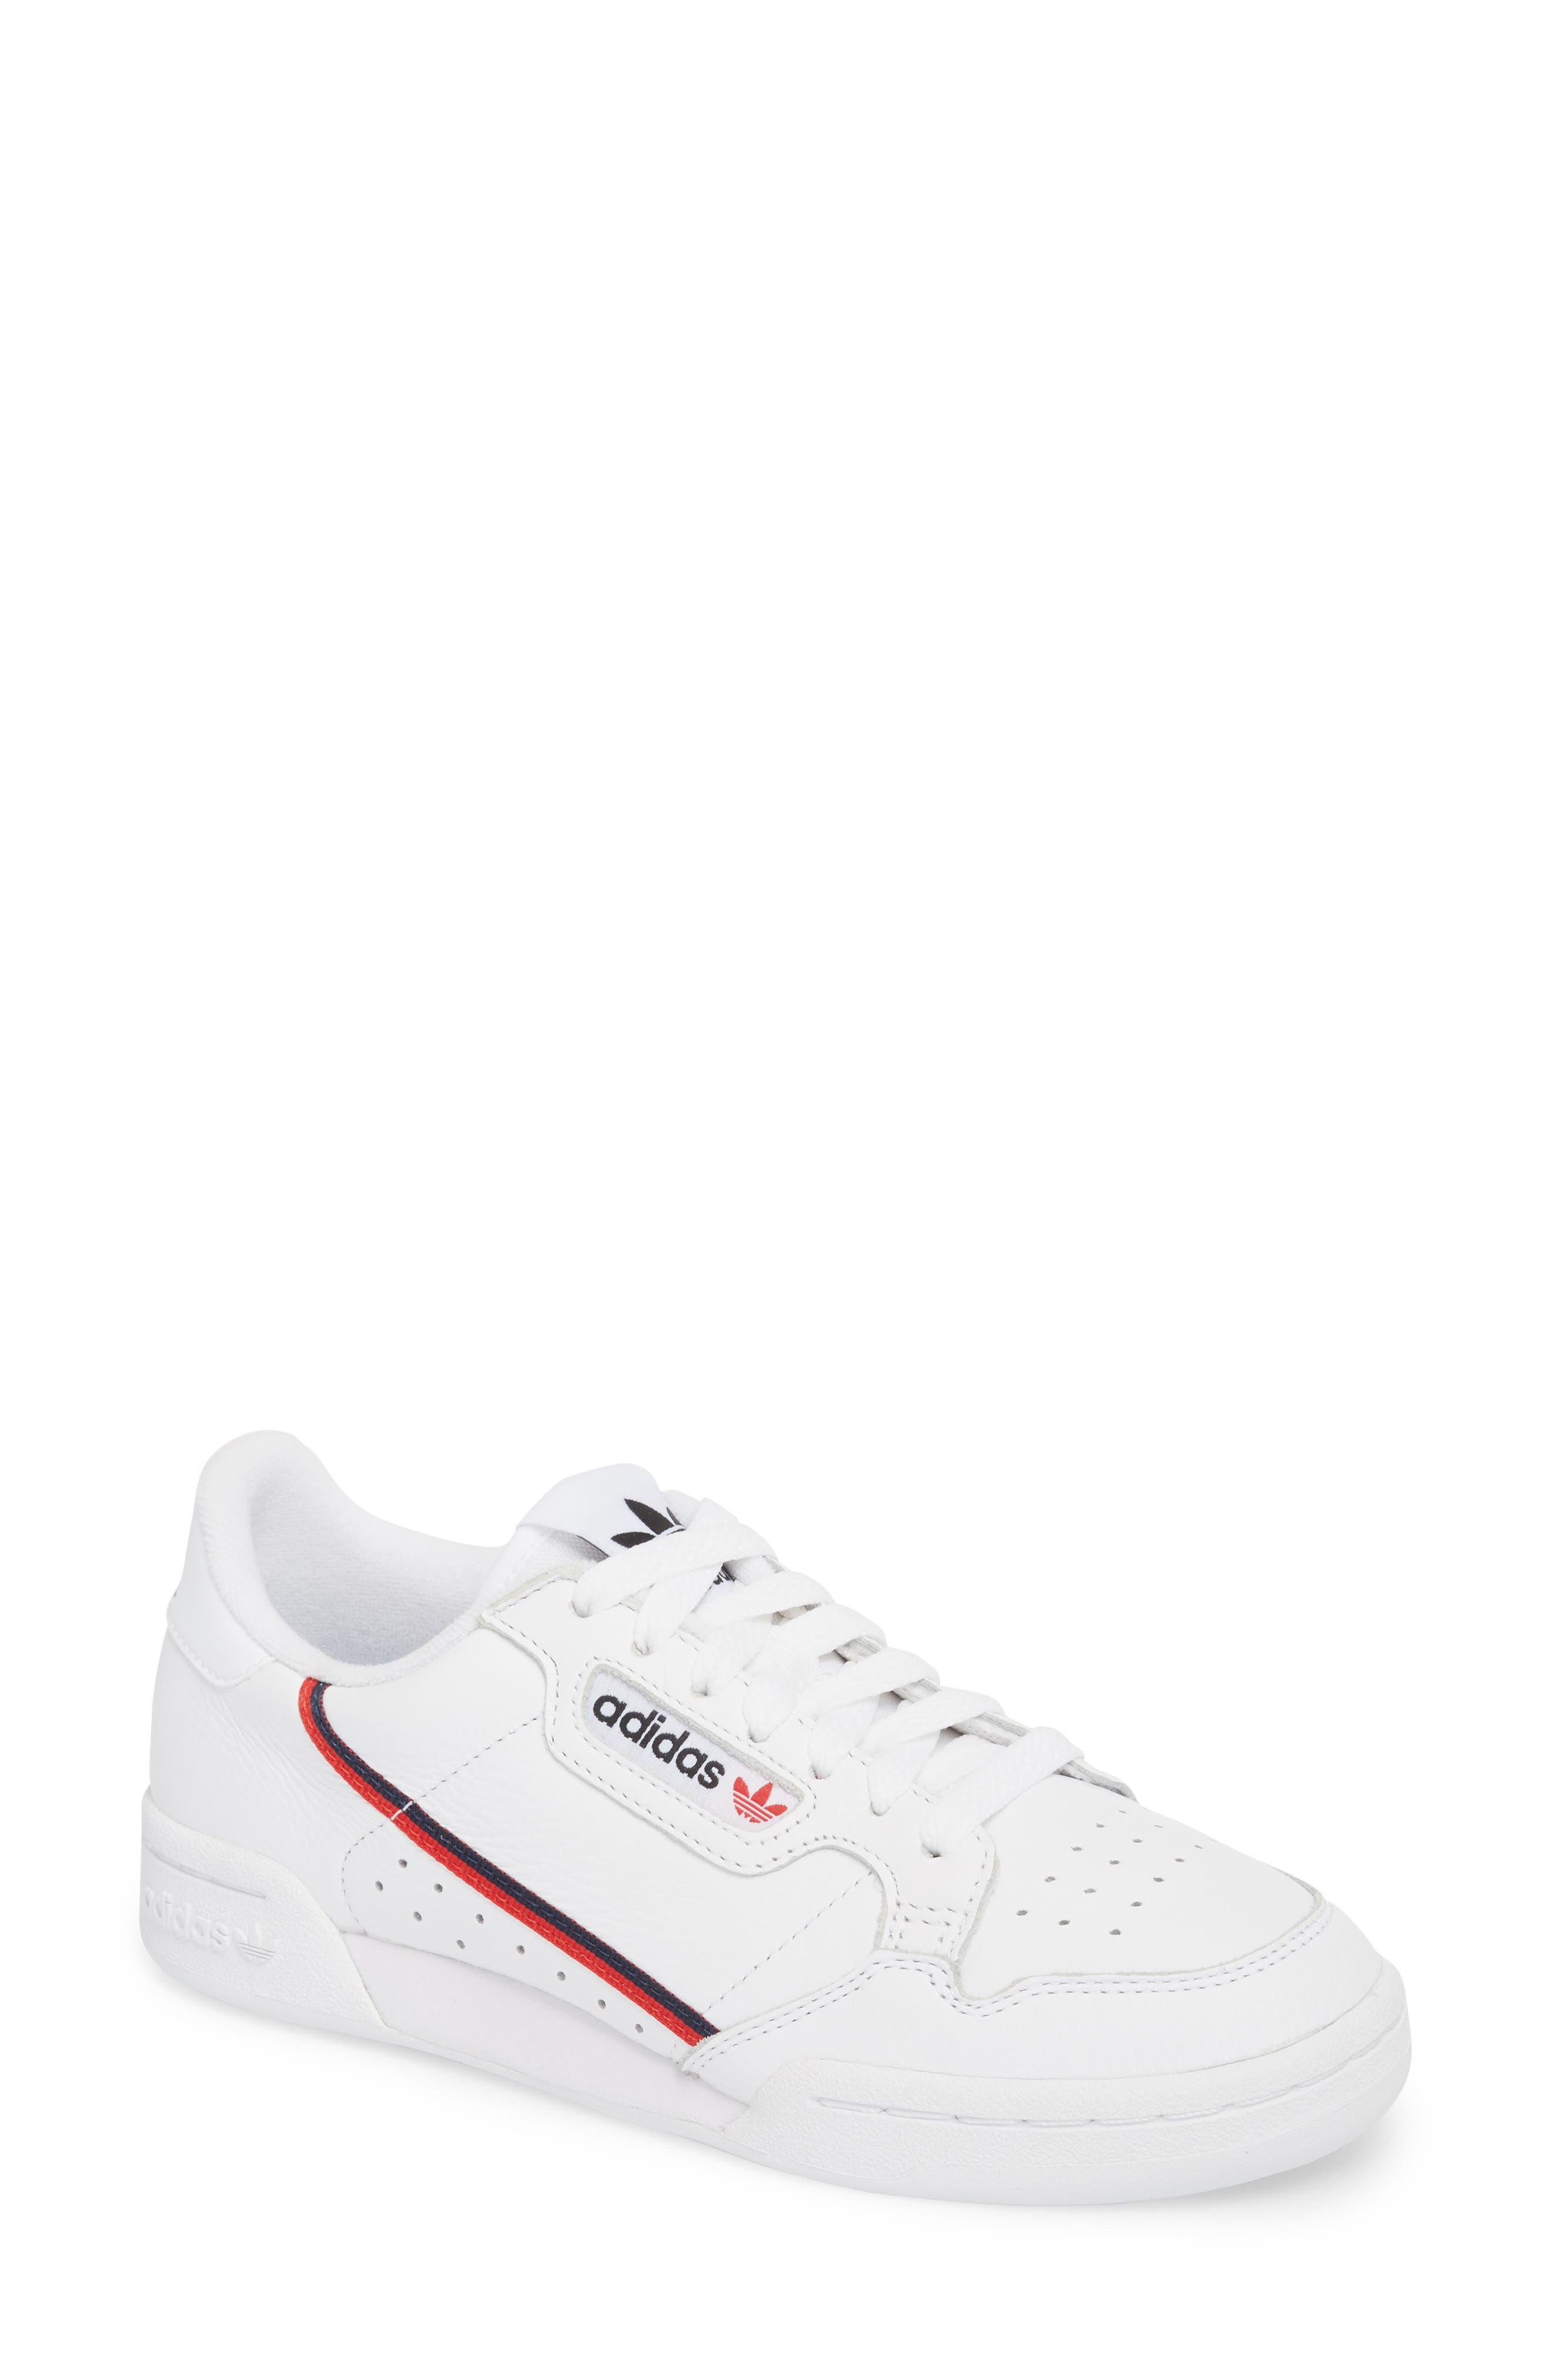 white adidas shoes women